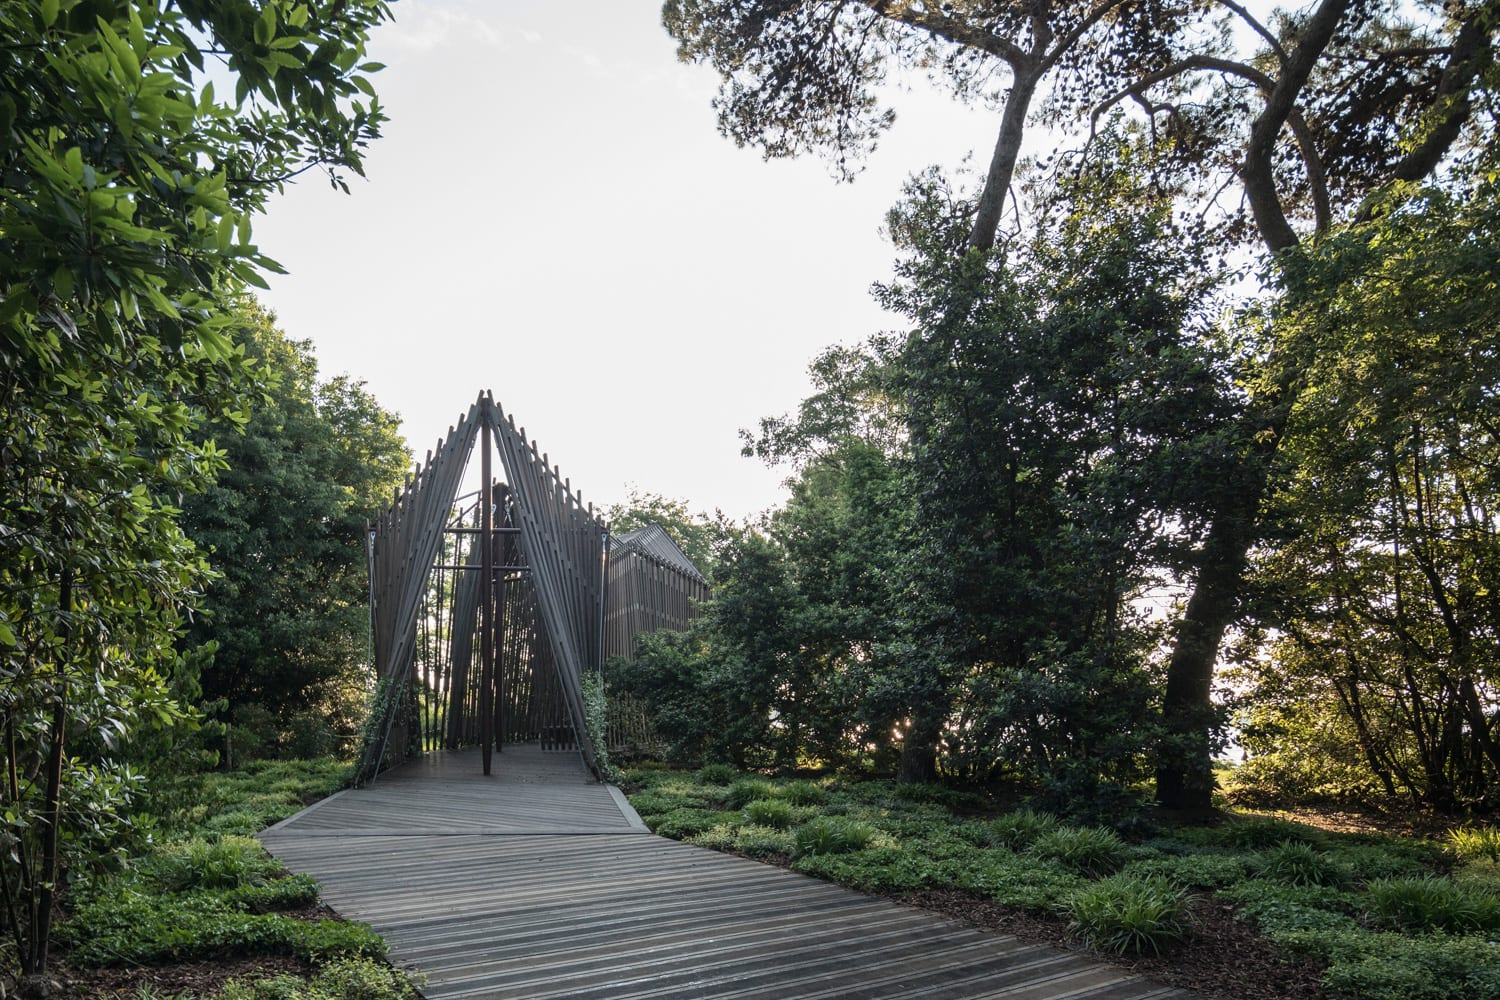 Norman Foster, United Kingdom Chapel in a Venice Forest, Venice Architecture Biennale 2018 | Yellowtrace